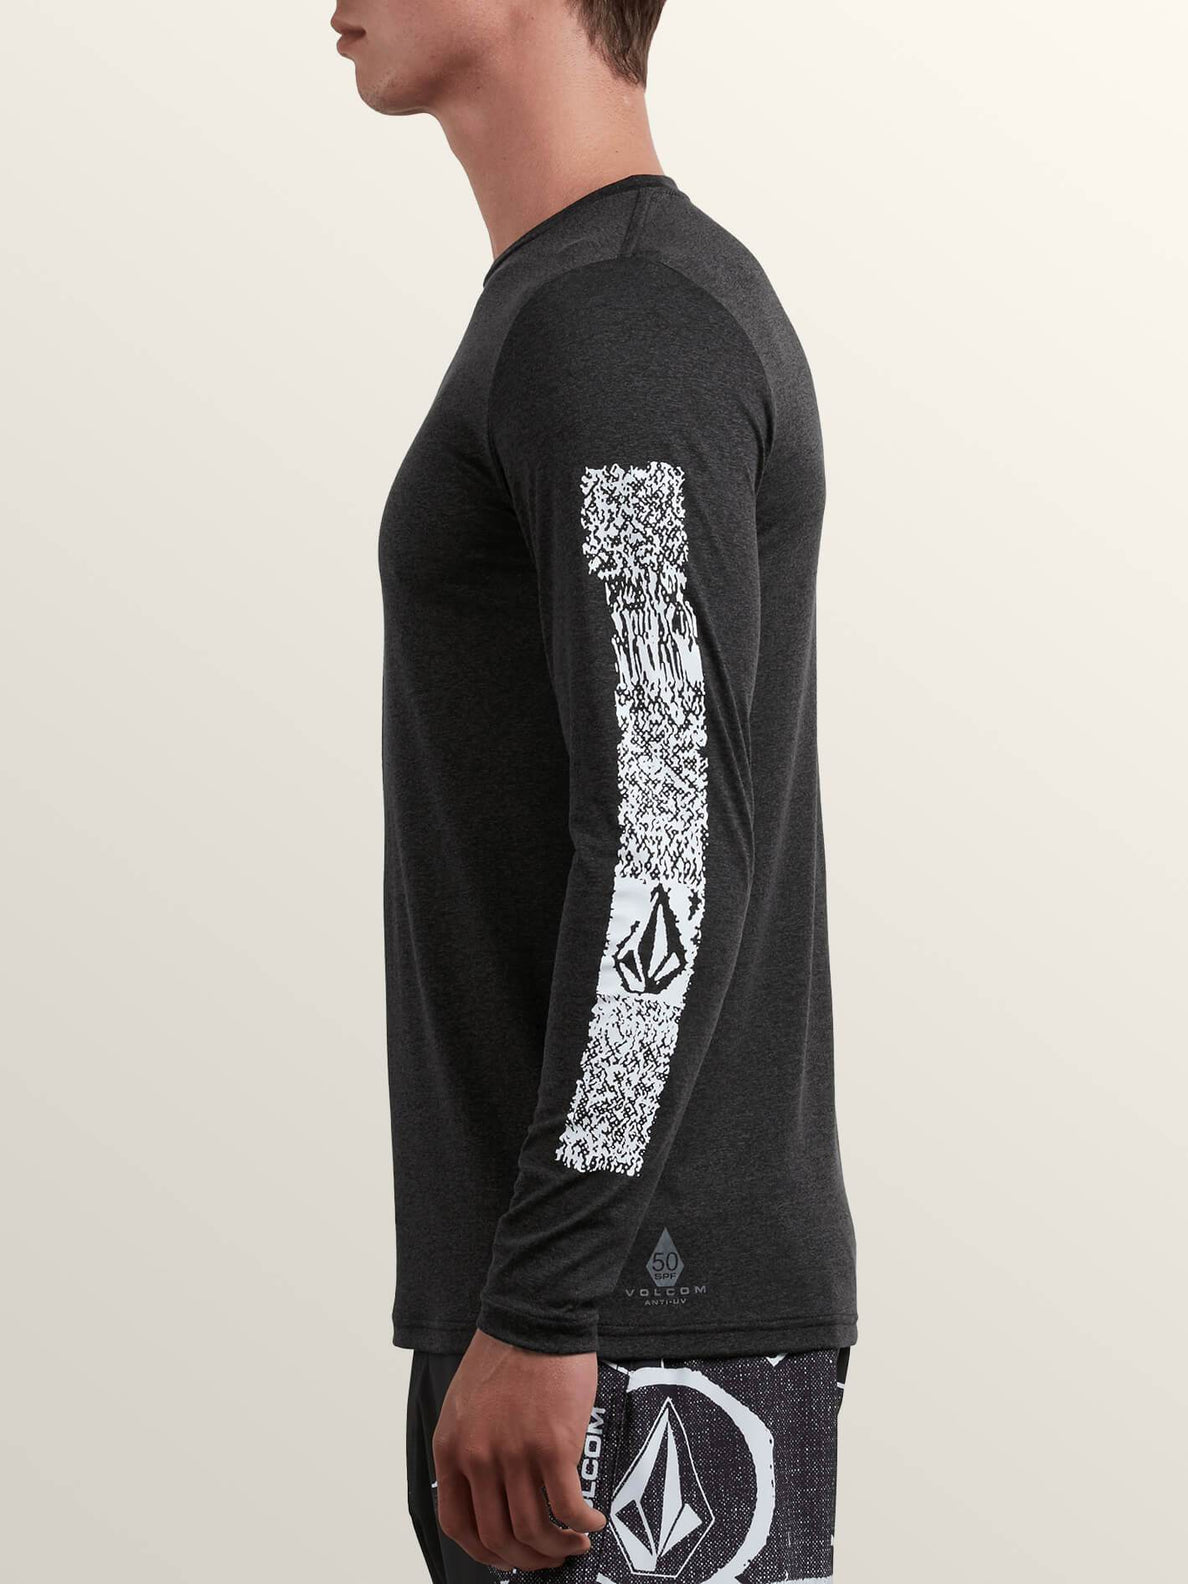 Lido Pixel Heather Long Sleeve Rashguard In Charcoal Heather, Alternate View